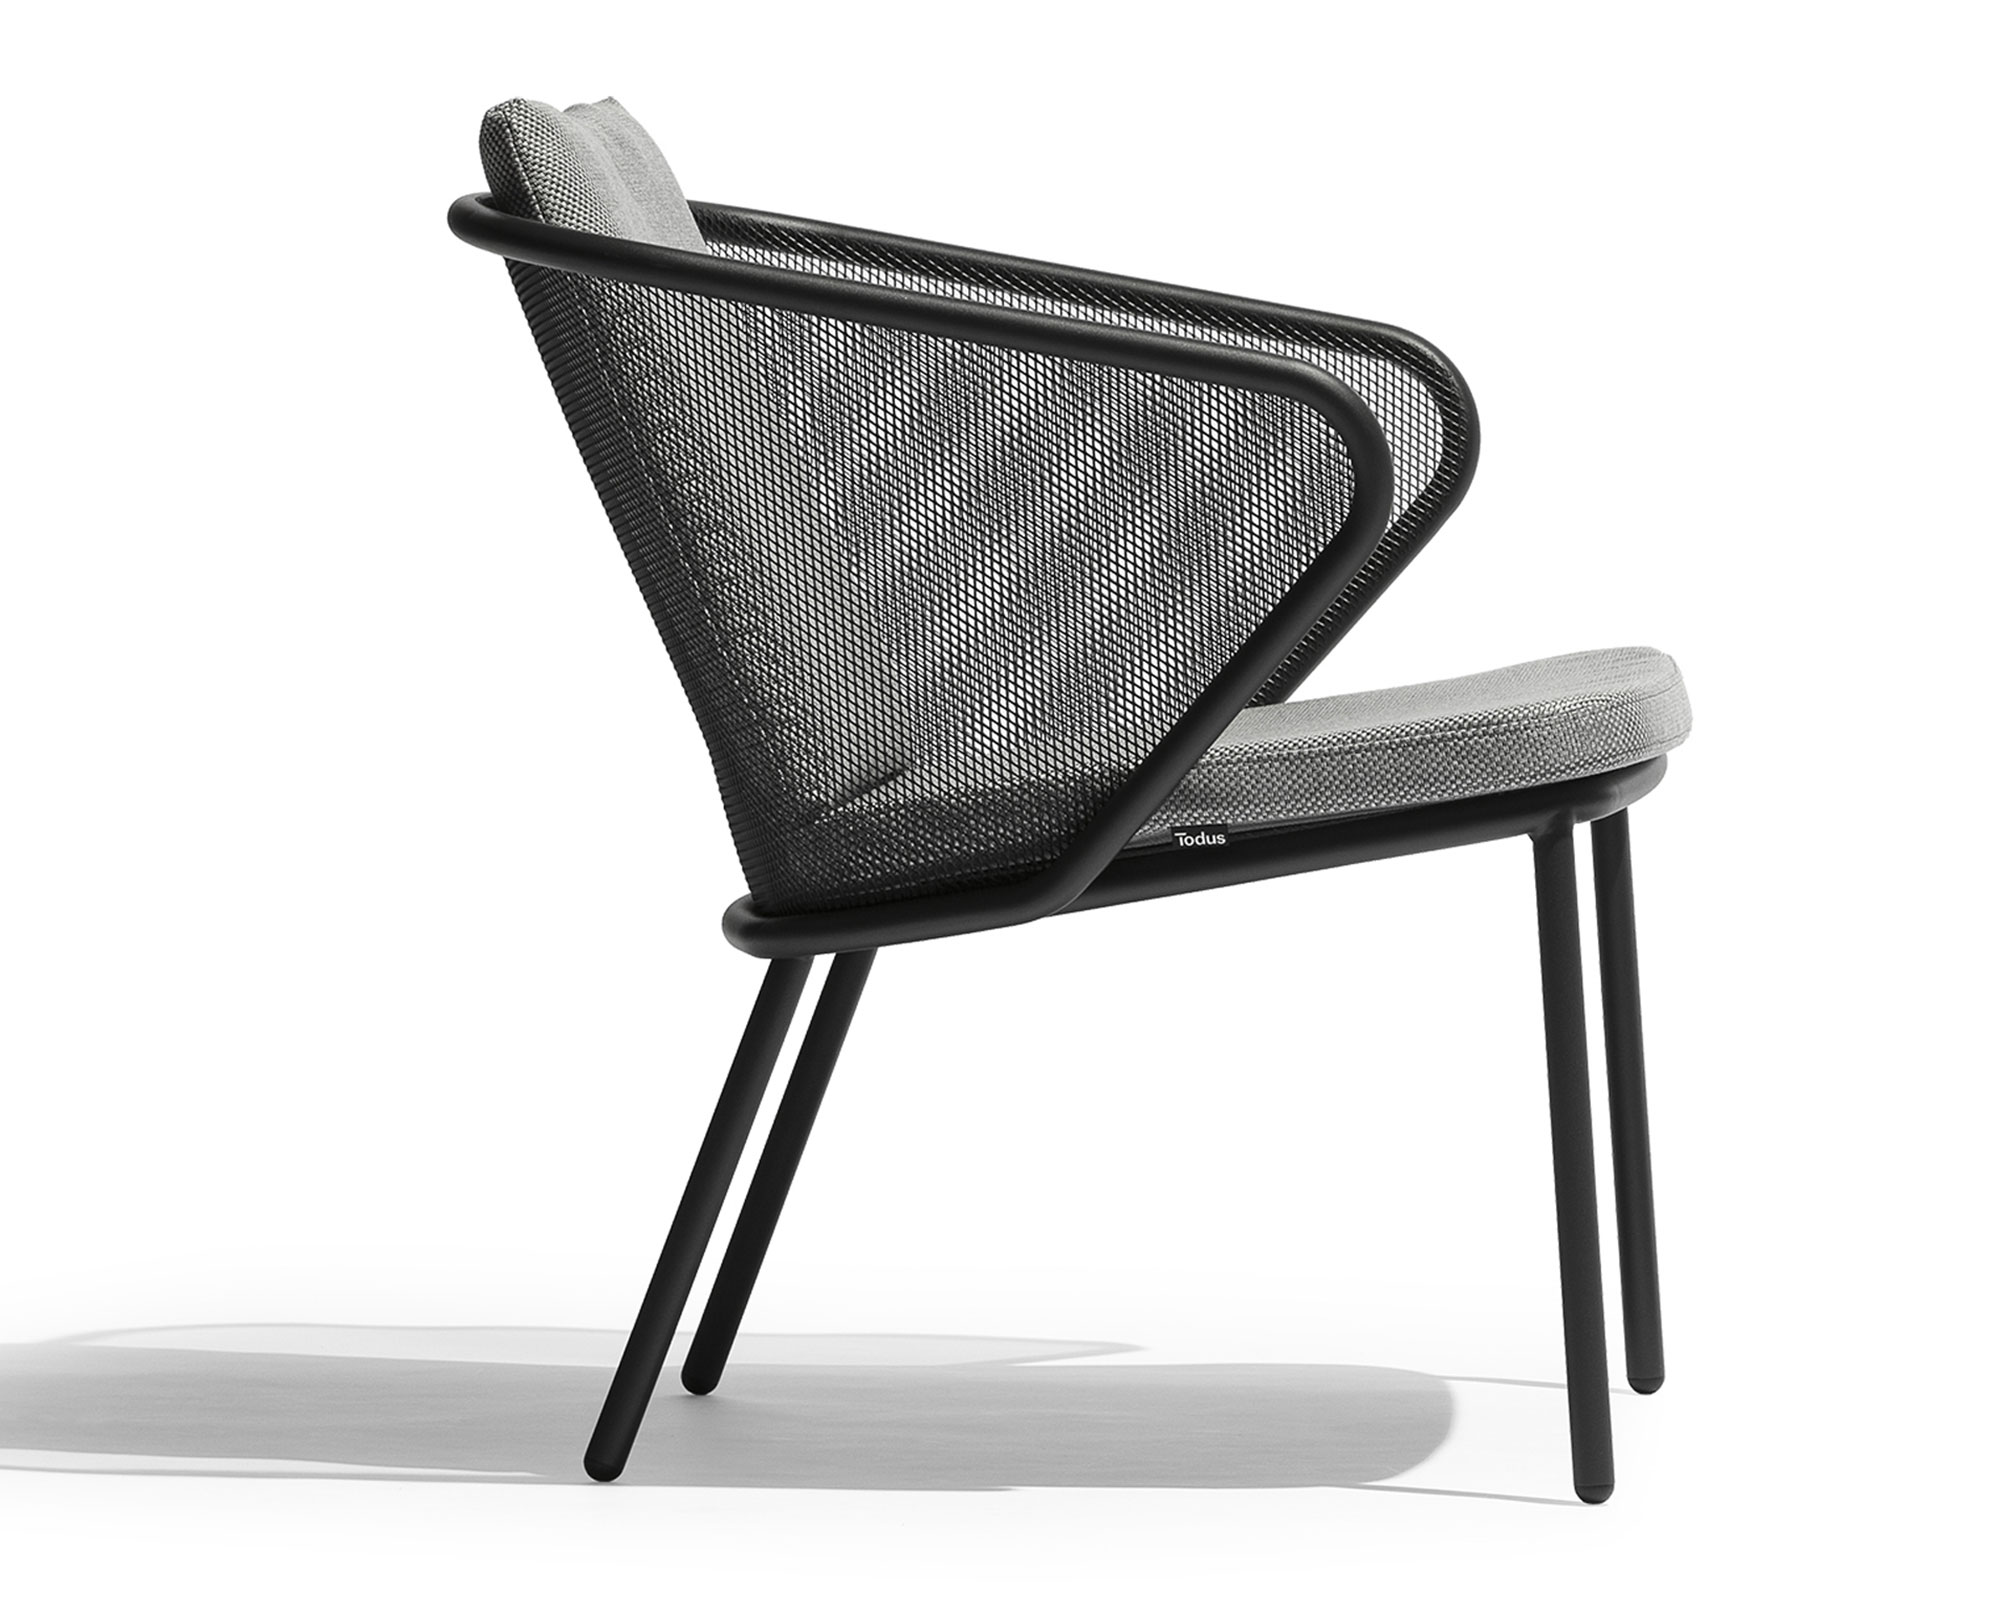 Outdoor Lounge Sessel Condor Streckmetall Im Bowi Online